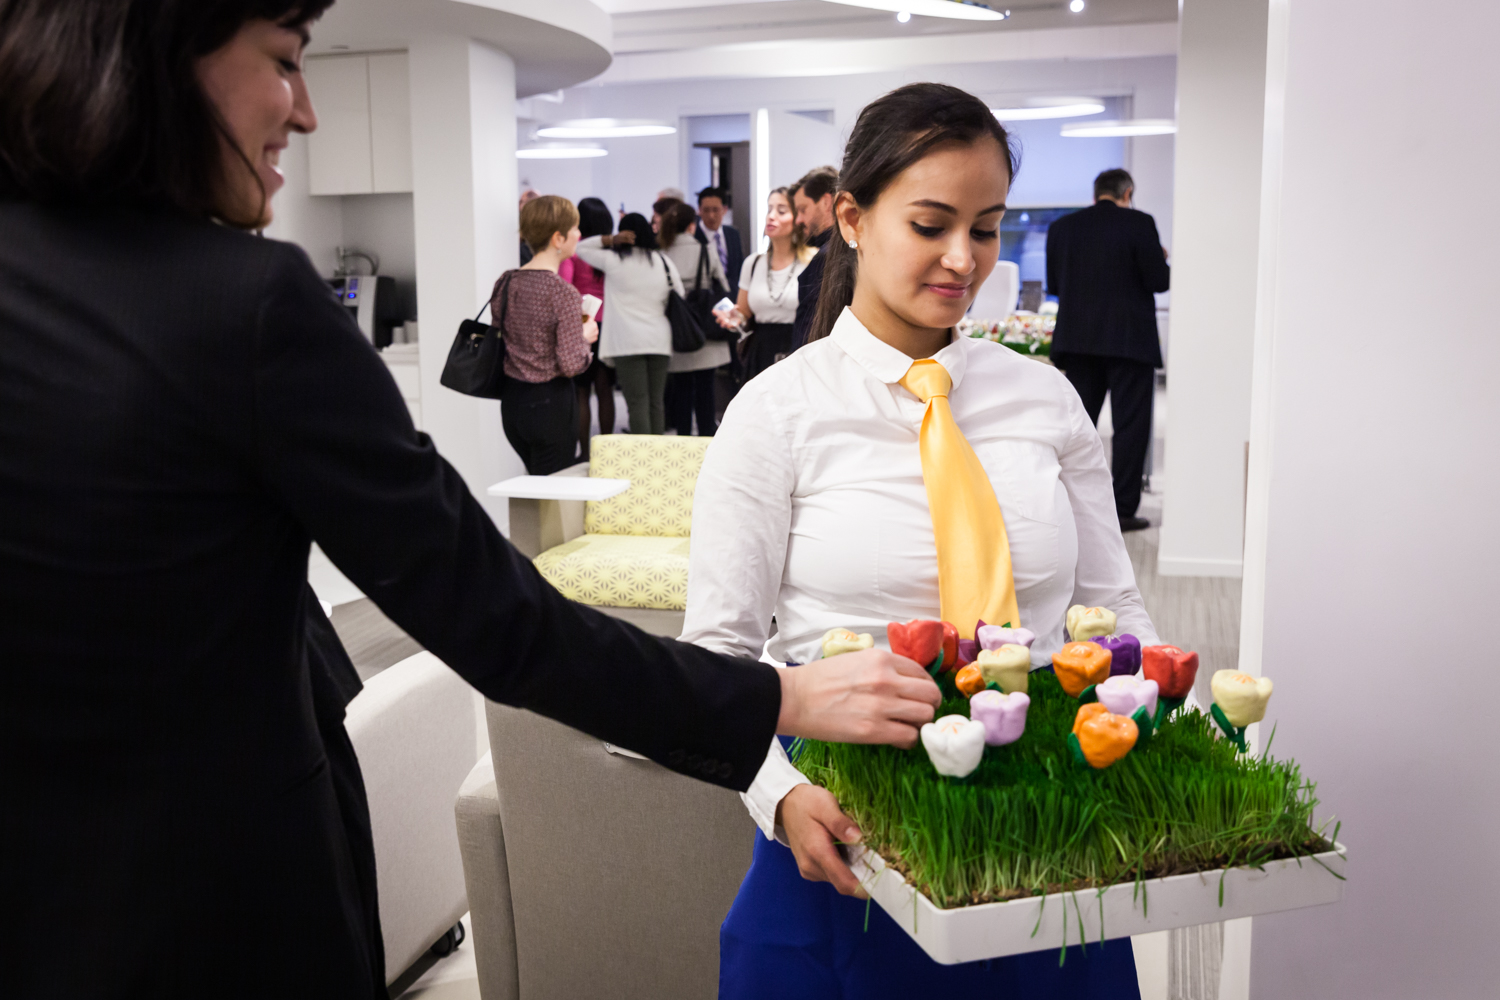 Waiter offering appetizers to a guest for an article on corporate event planning tips